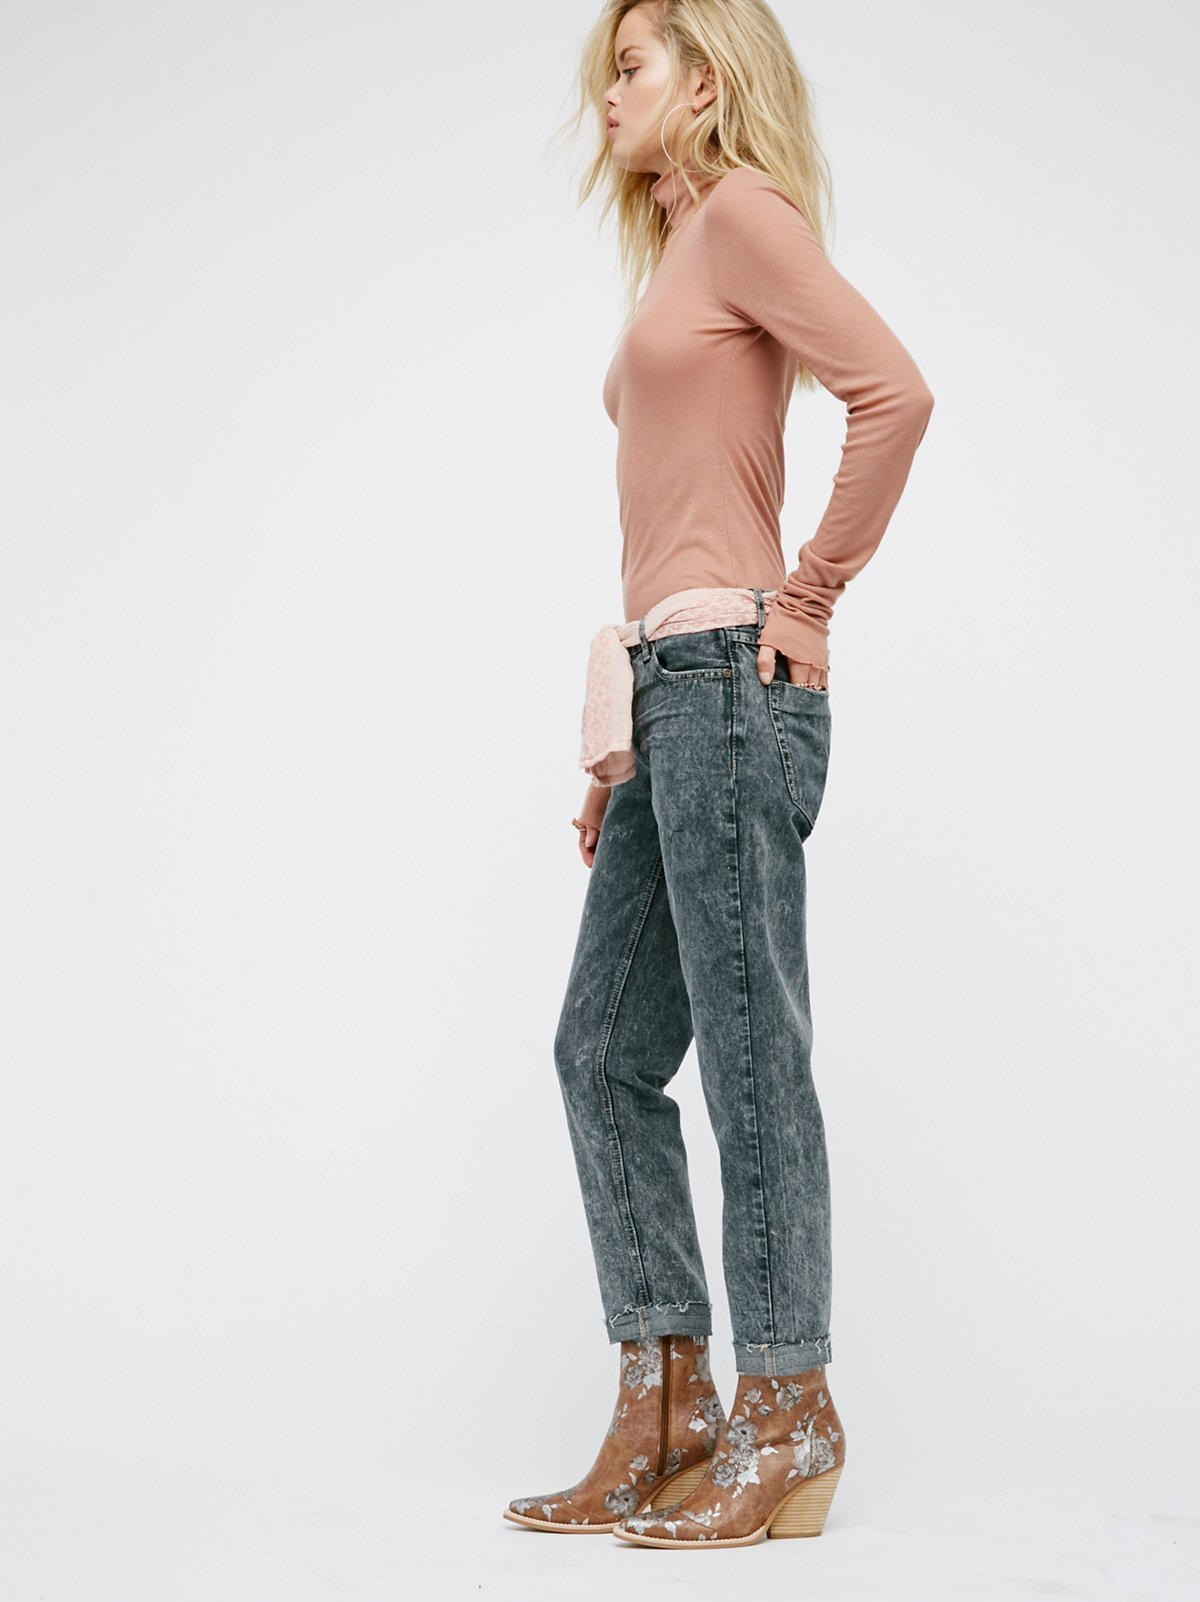 BestBars.in